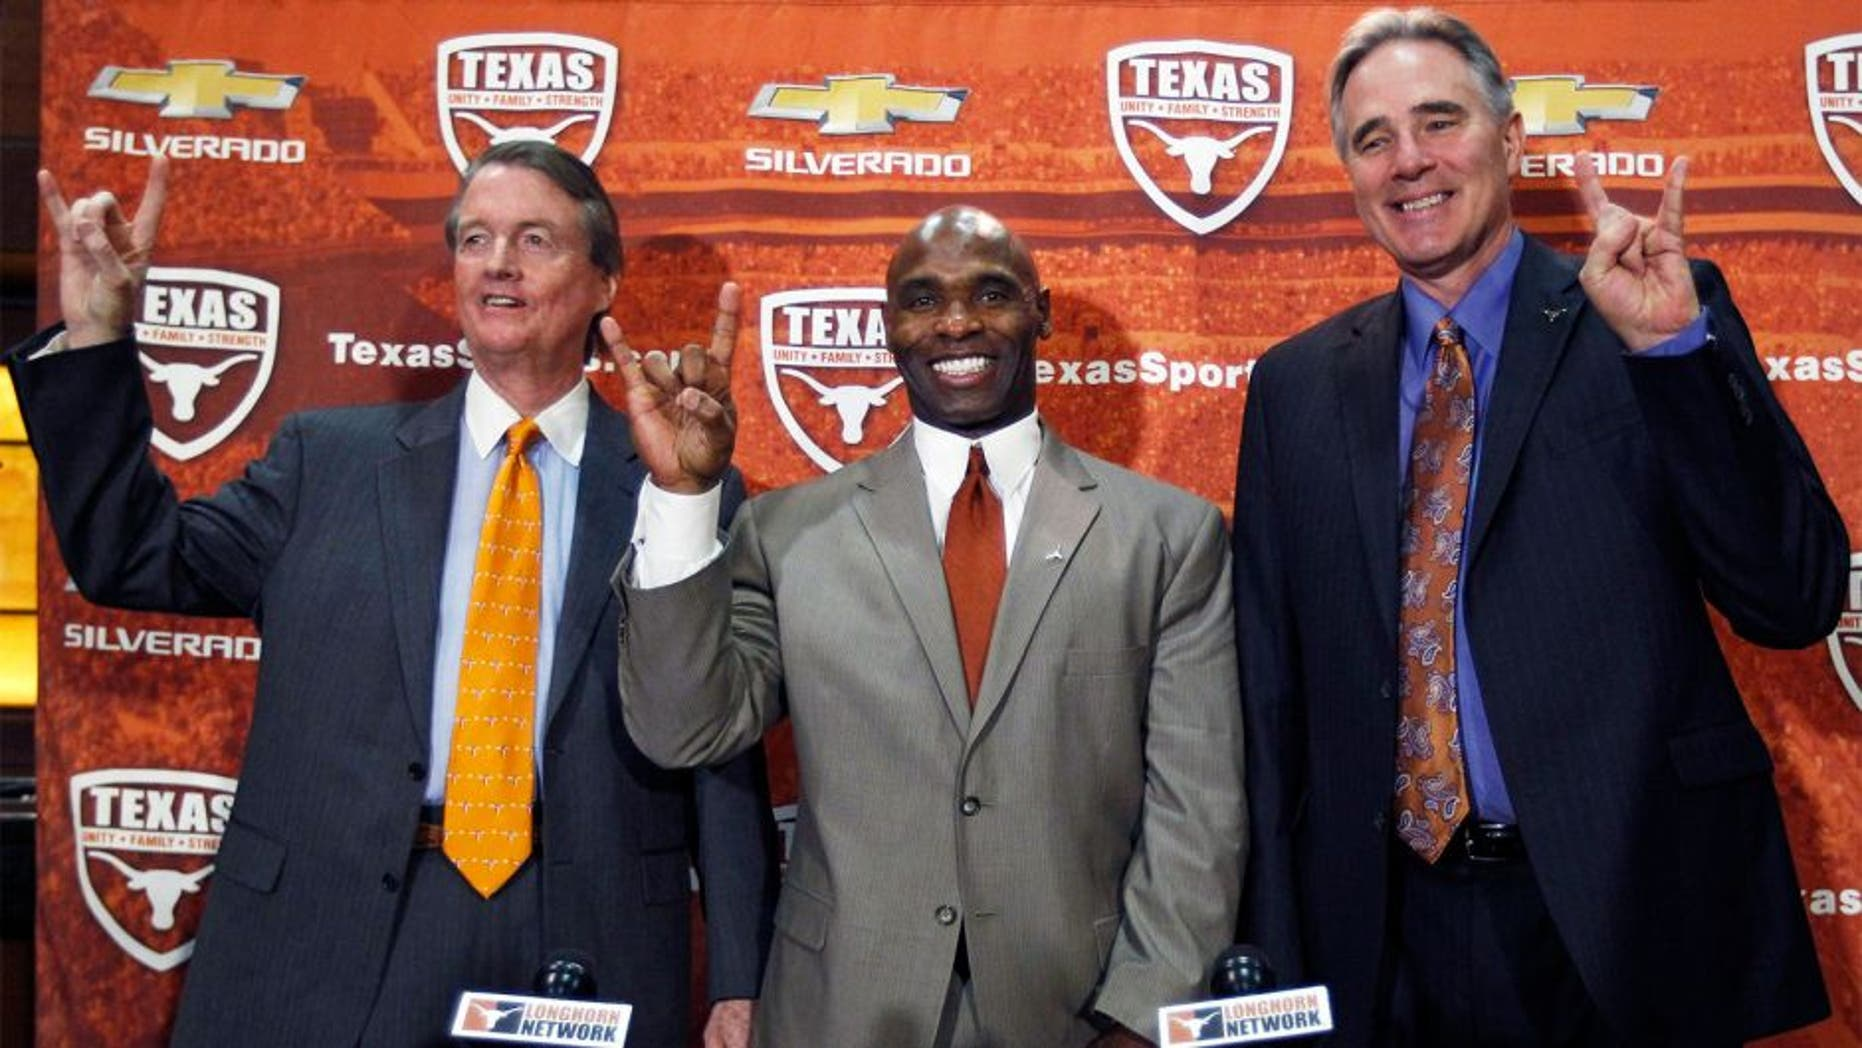 AUSTIN, TX - JANUARY 6: University of Texas president Bill Powers, left and athletic director Steve Patterson, right, introduce new Longhorns head football coach Charlie Strong from Louisville during a press conference January 6, 2014 at Darrell K. Royal-Texas Memorial Stadium in Austin, Texas. (Photo by Erich Schlegel/Getty Images)